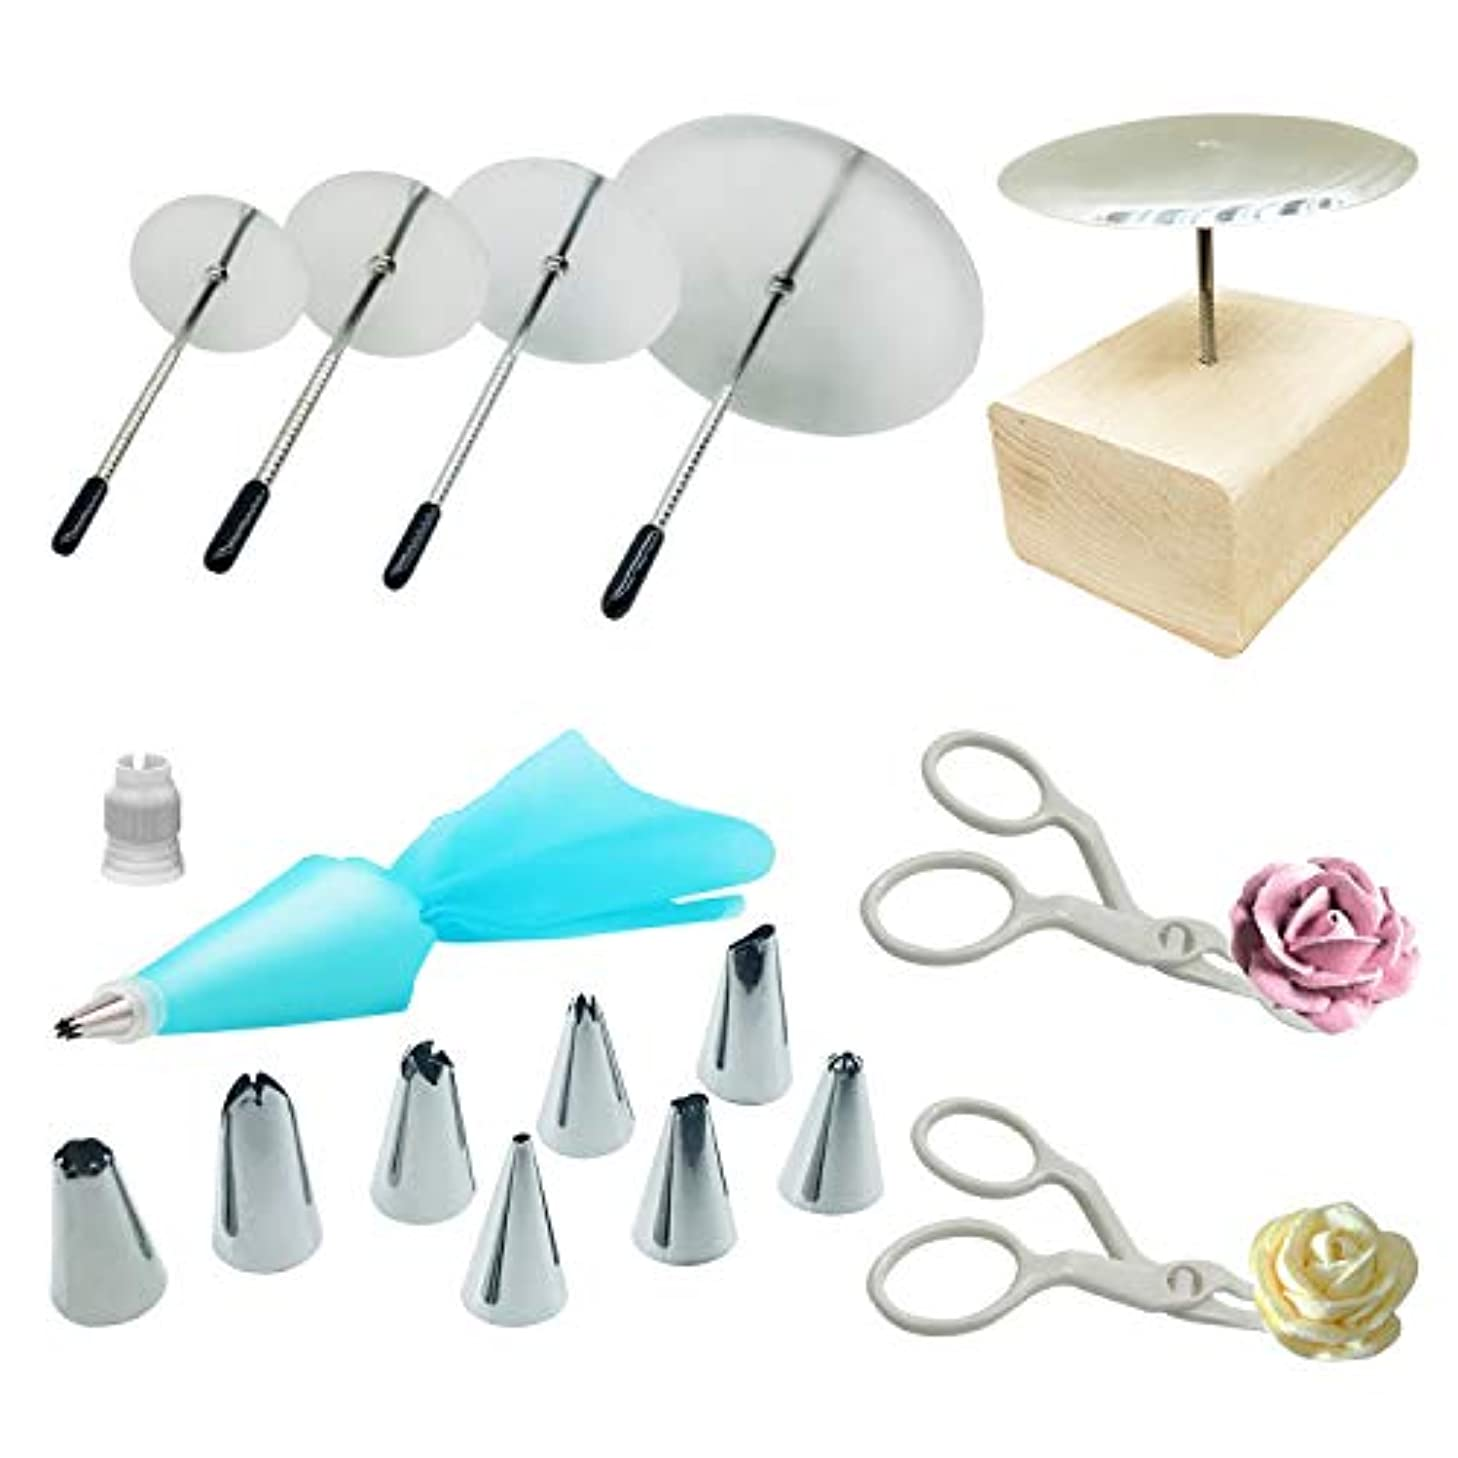 17 PCS Cake Decorating Supplies, Woohome 1 Set Cake Decorating Tips Combo, 4 PCS Cake Flower Nail, 2 PCS Flower Lifters, 1 PCS Wood Flower Nails Holder for Cake Cupcake Icing Flowers Decoration